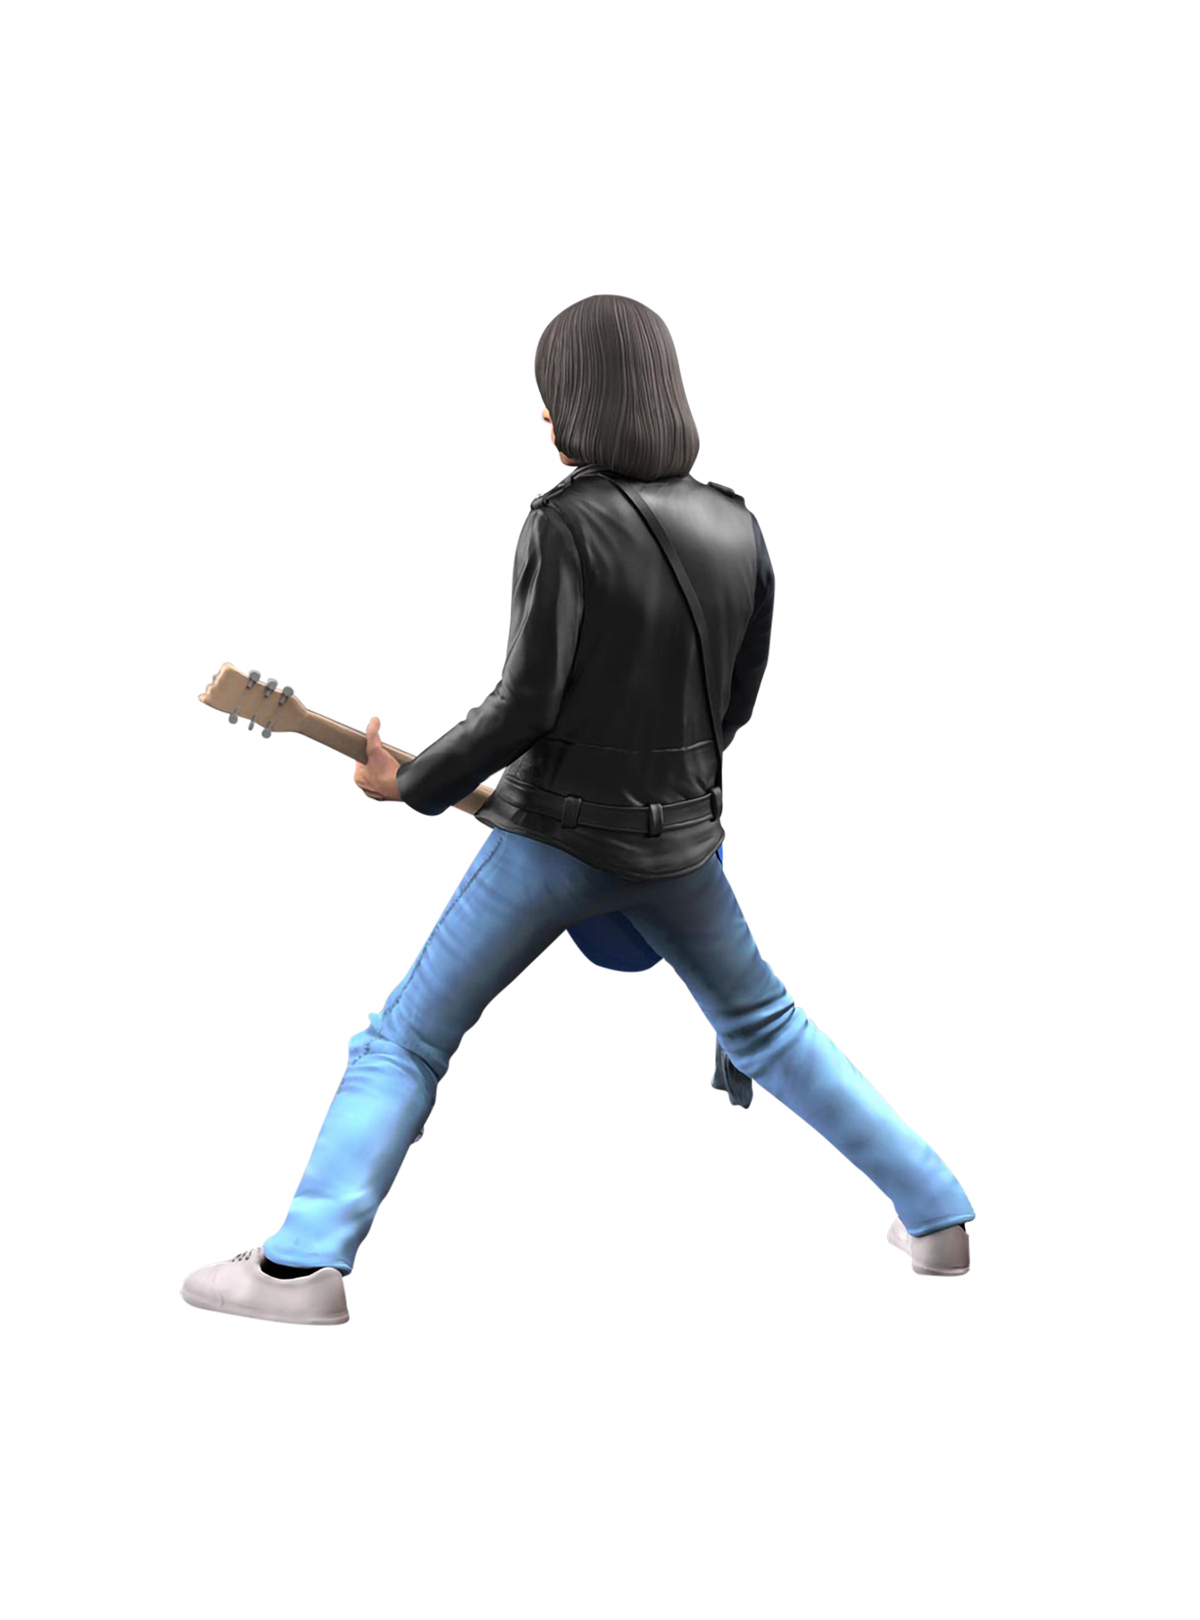 LIMITED EDITION JOHNNY RAMONE™ ROCK ICONZ STATUE